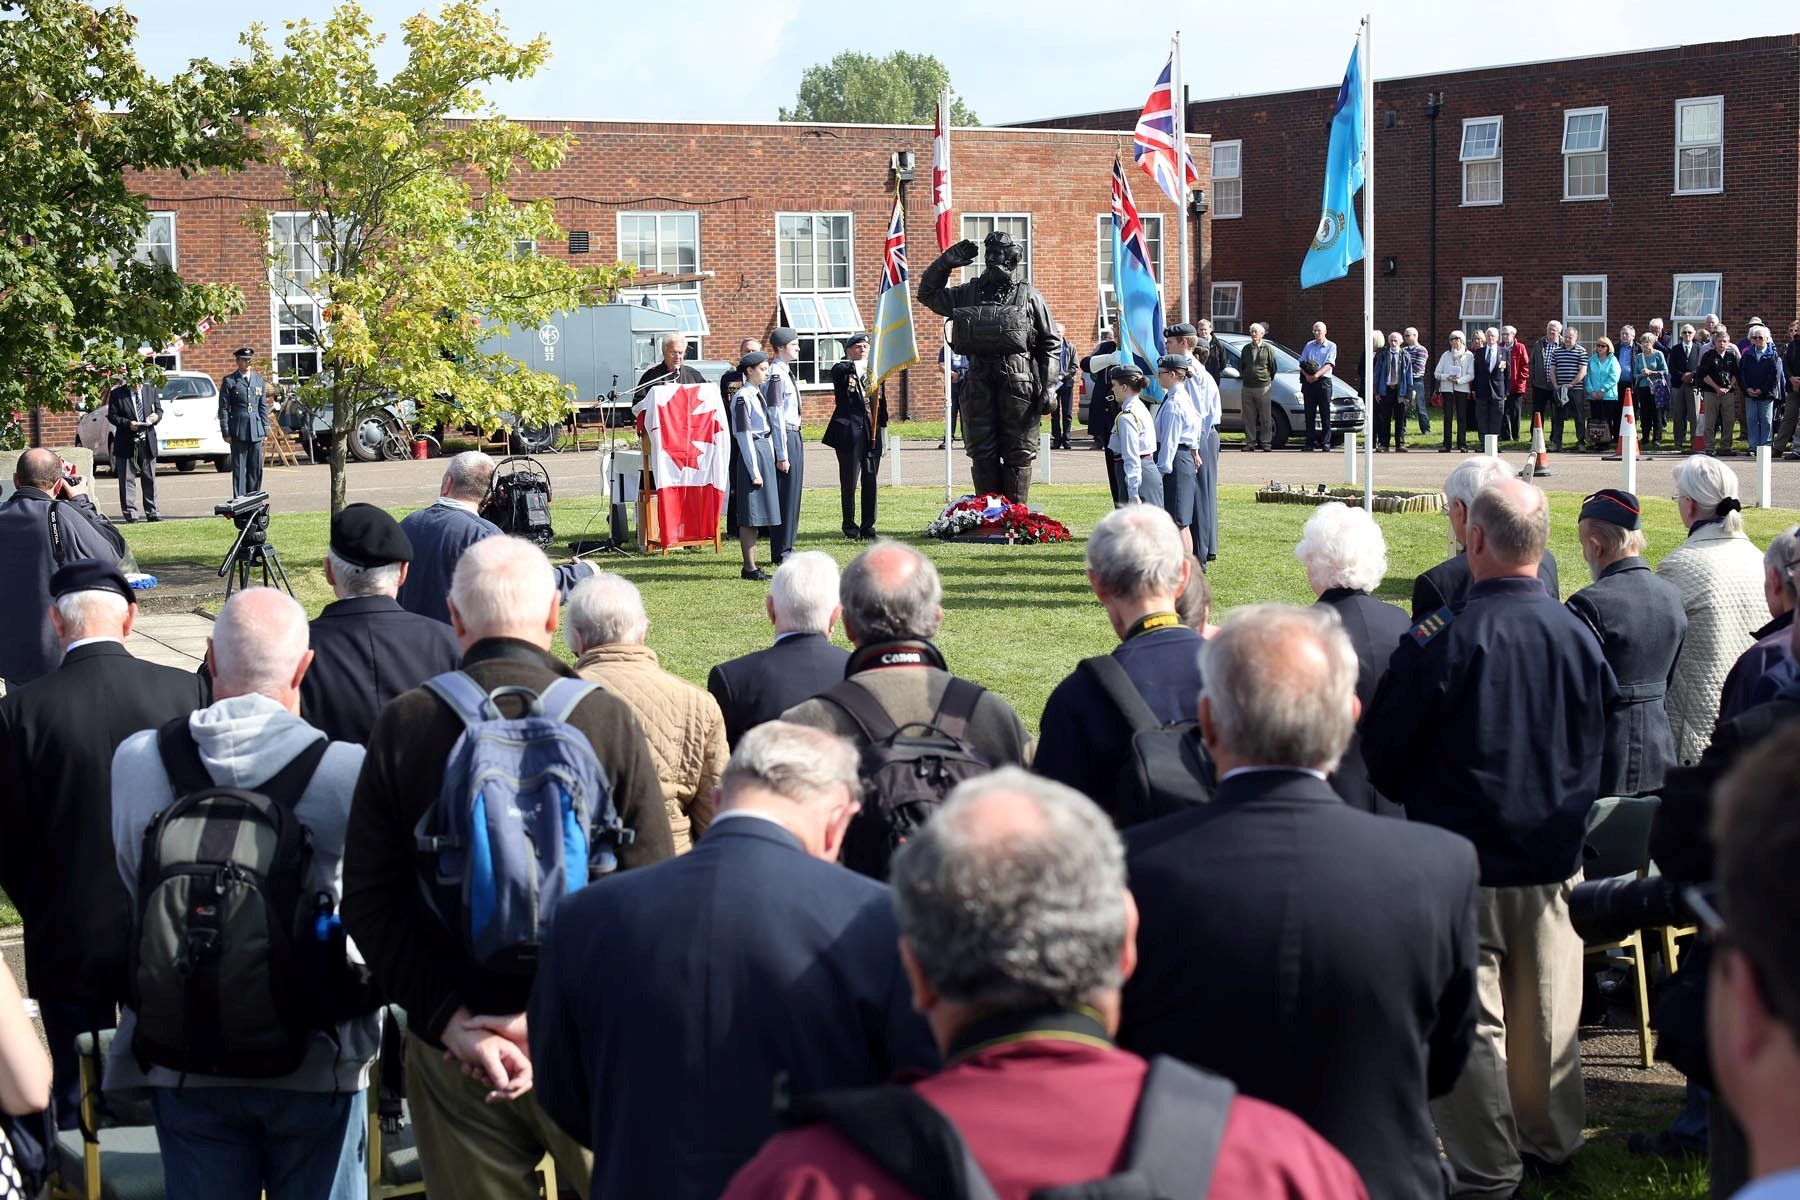 Historic Lancaster's visit is a time for reflection and celebration